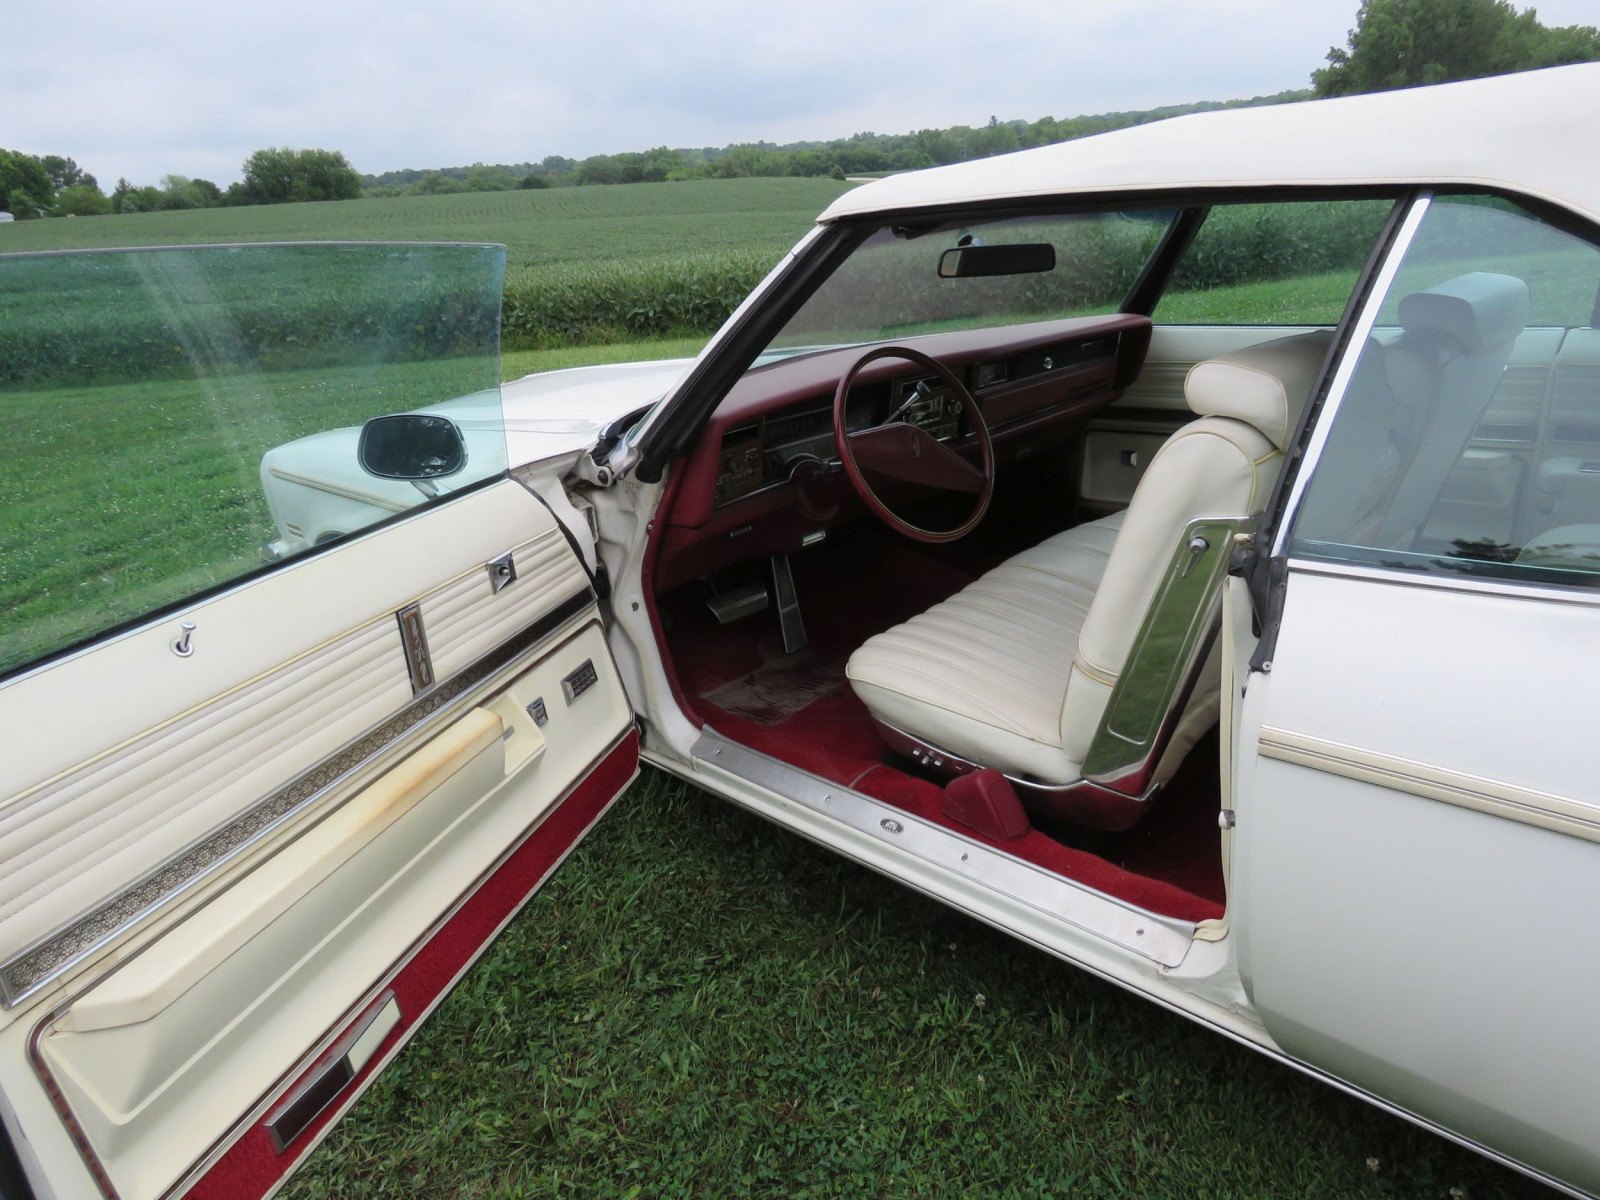 1975 Oldsmobile Delta 88 Convertible - Image 7